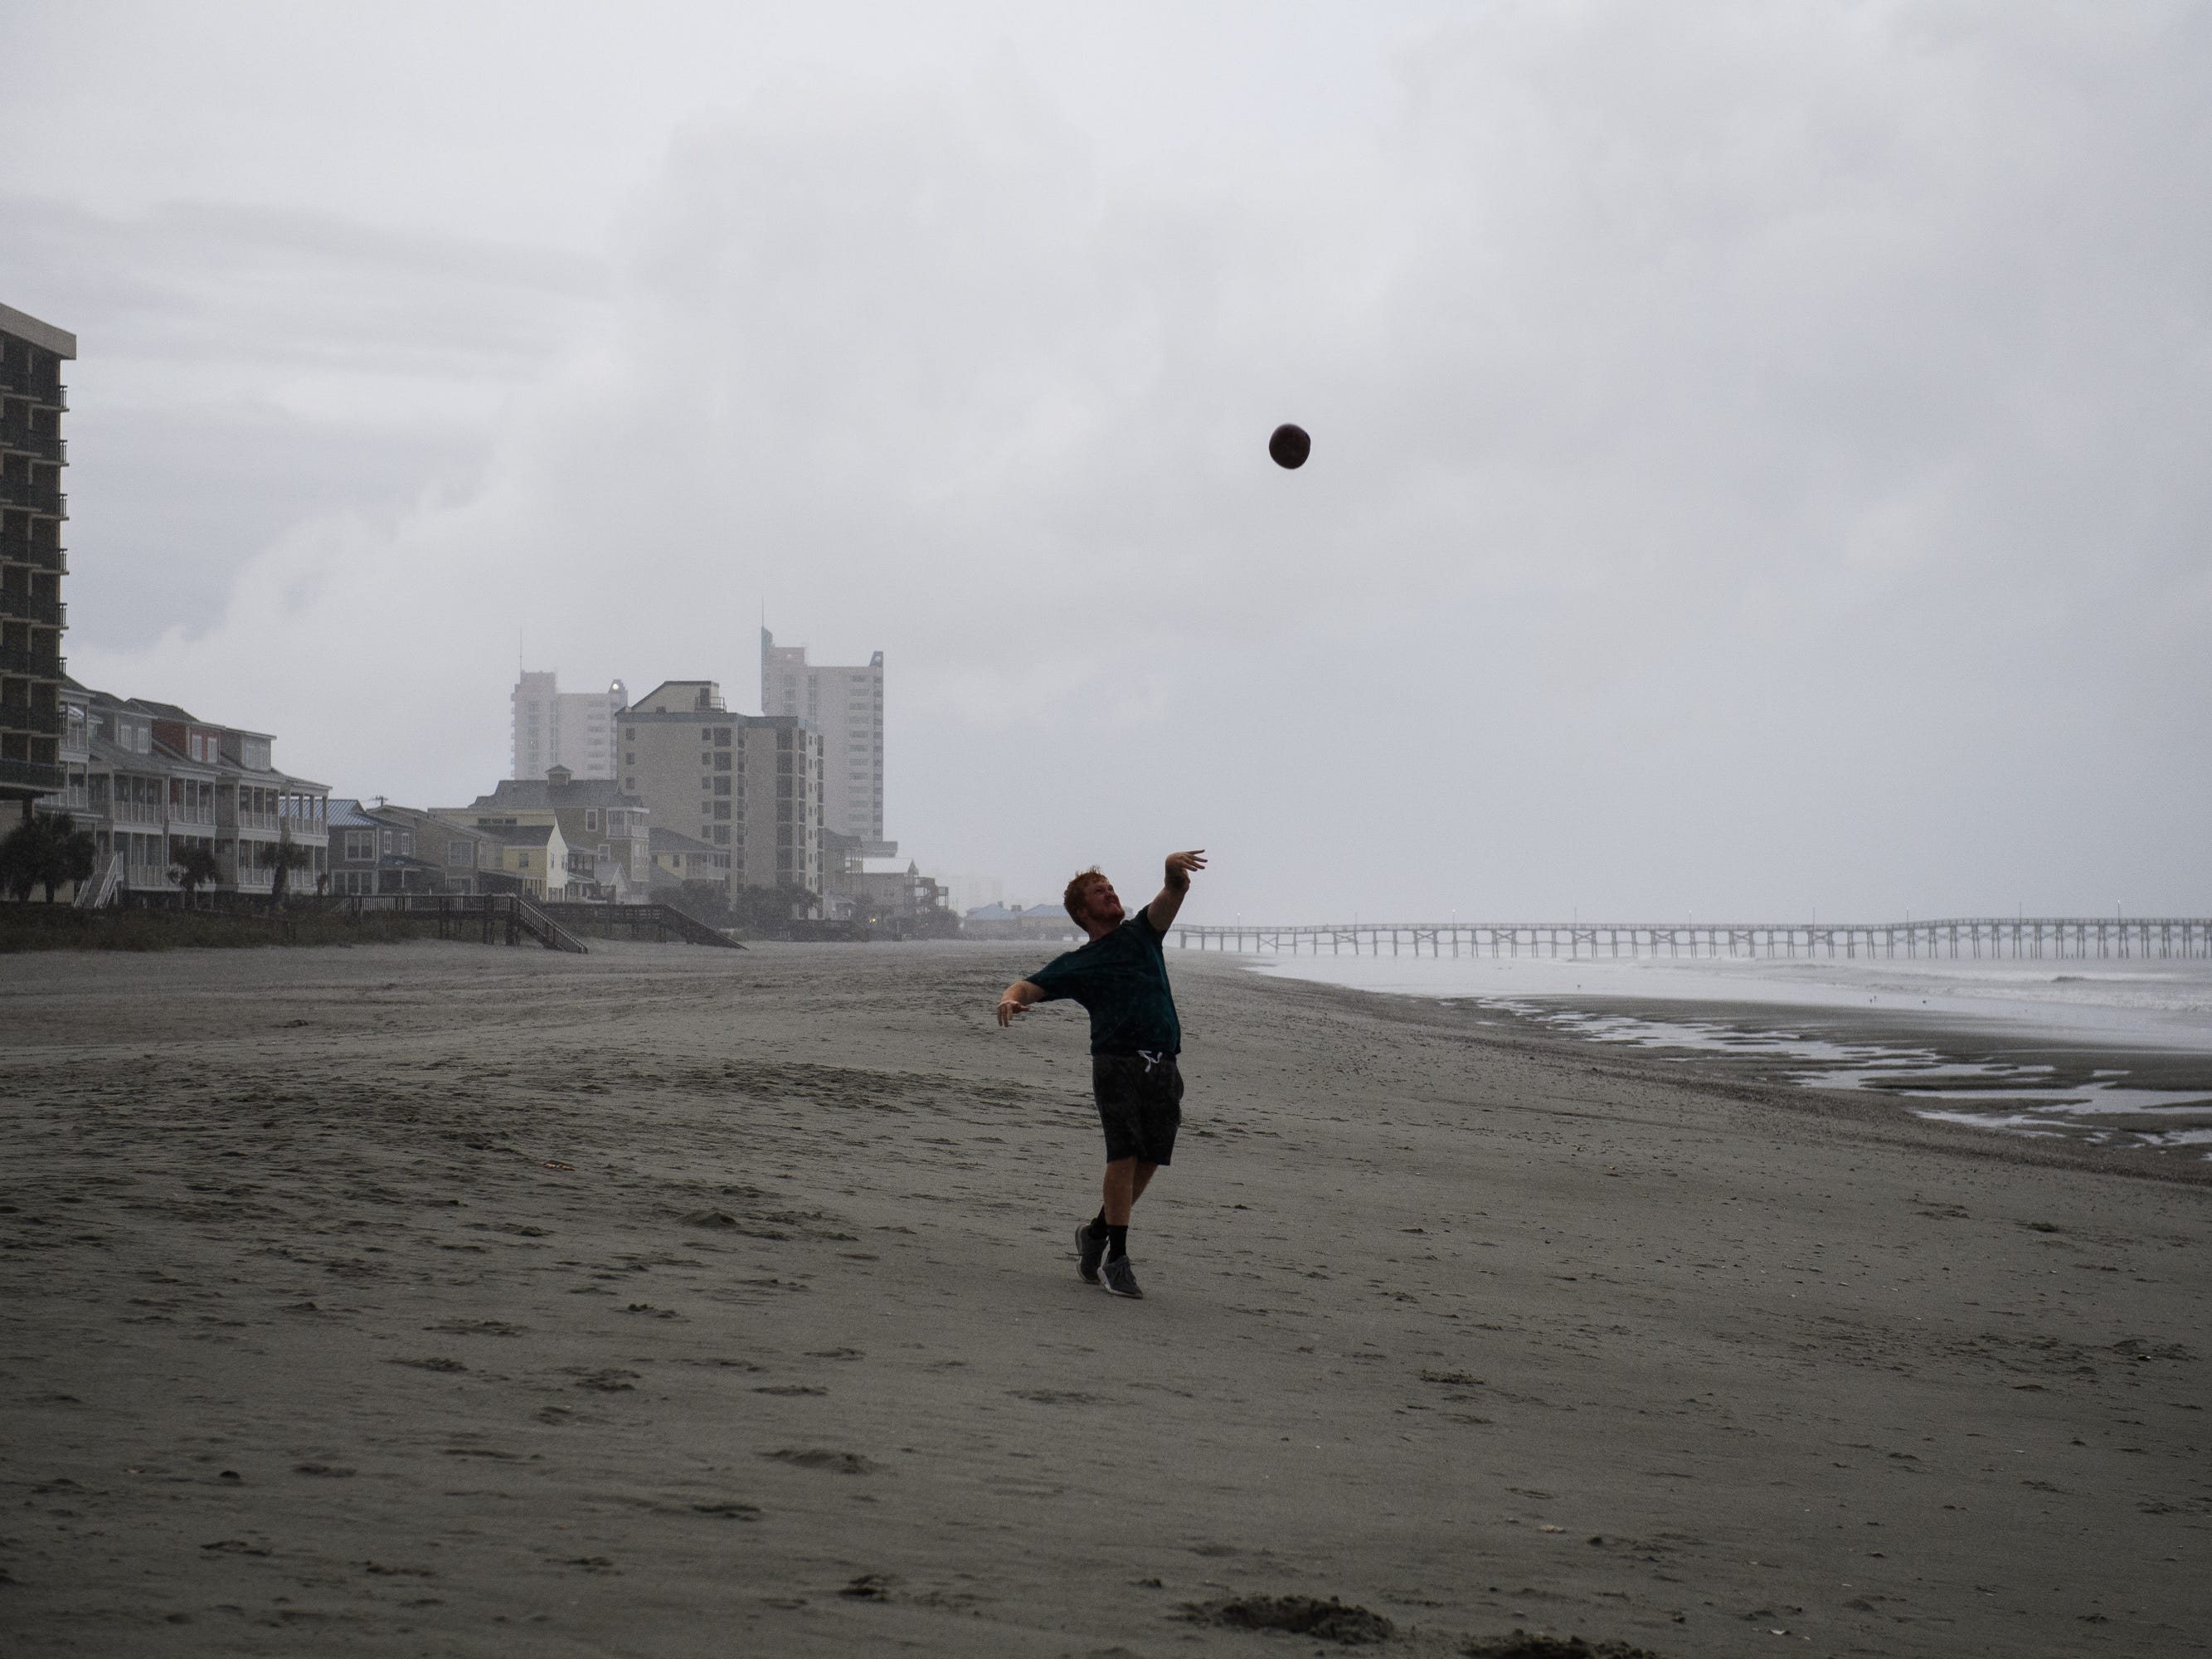 Noah Peele, 20, plays catch at Cherry Grove Beach in North Myrtle Beach as the first rain from a stray outer band of Hurricane Florence hits the area on Thursday, Sept. 13, 2018.